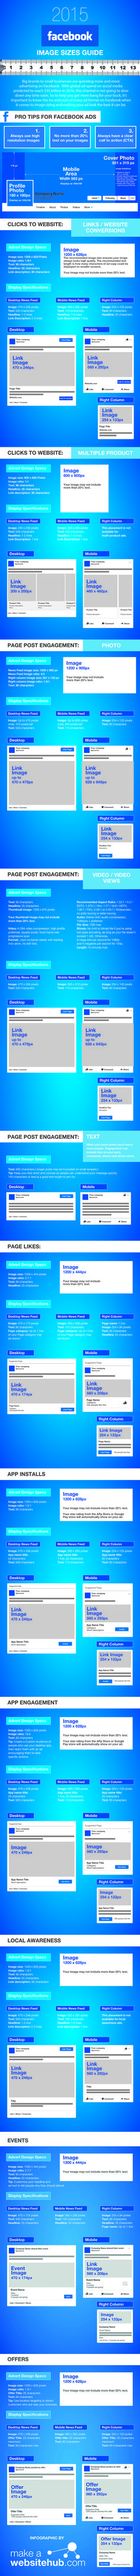 Facebook Images Sizes 2015